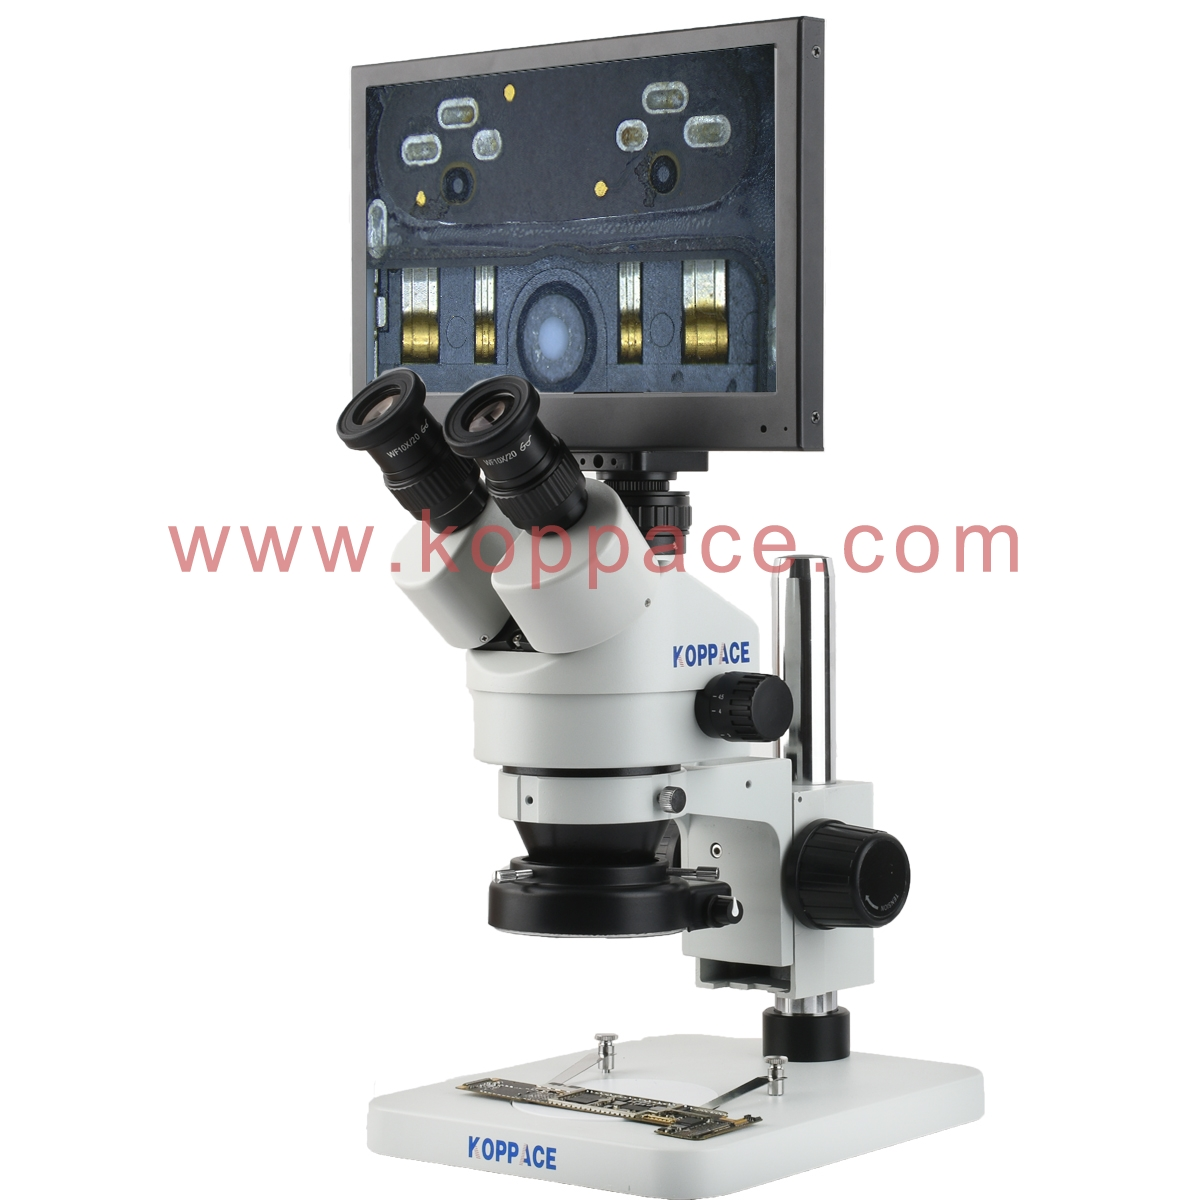 KOPPACE 20X-200X,HD Measuring Electron Microscope,High-Speed 60-Frame,Can Take Pictures and Video to Save Forms,Universal Cross arm Bracket